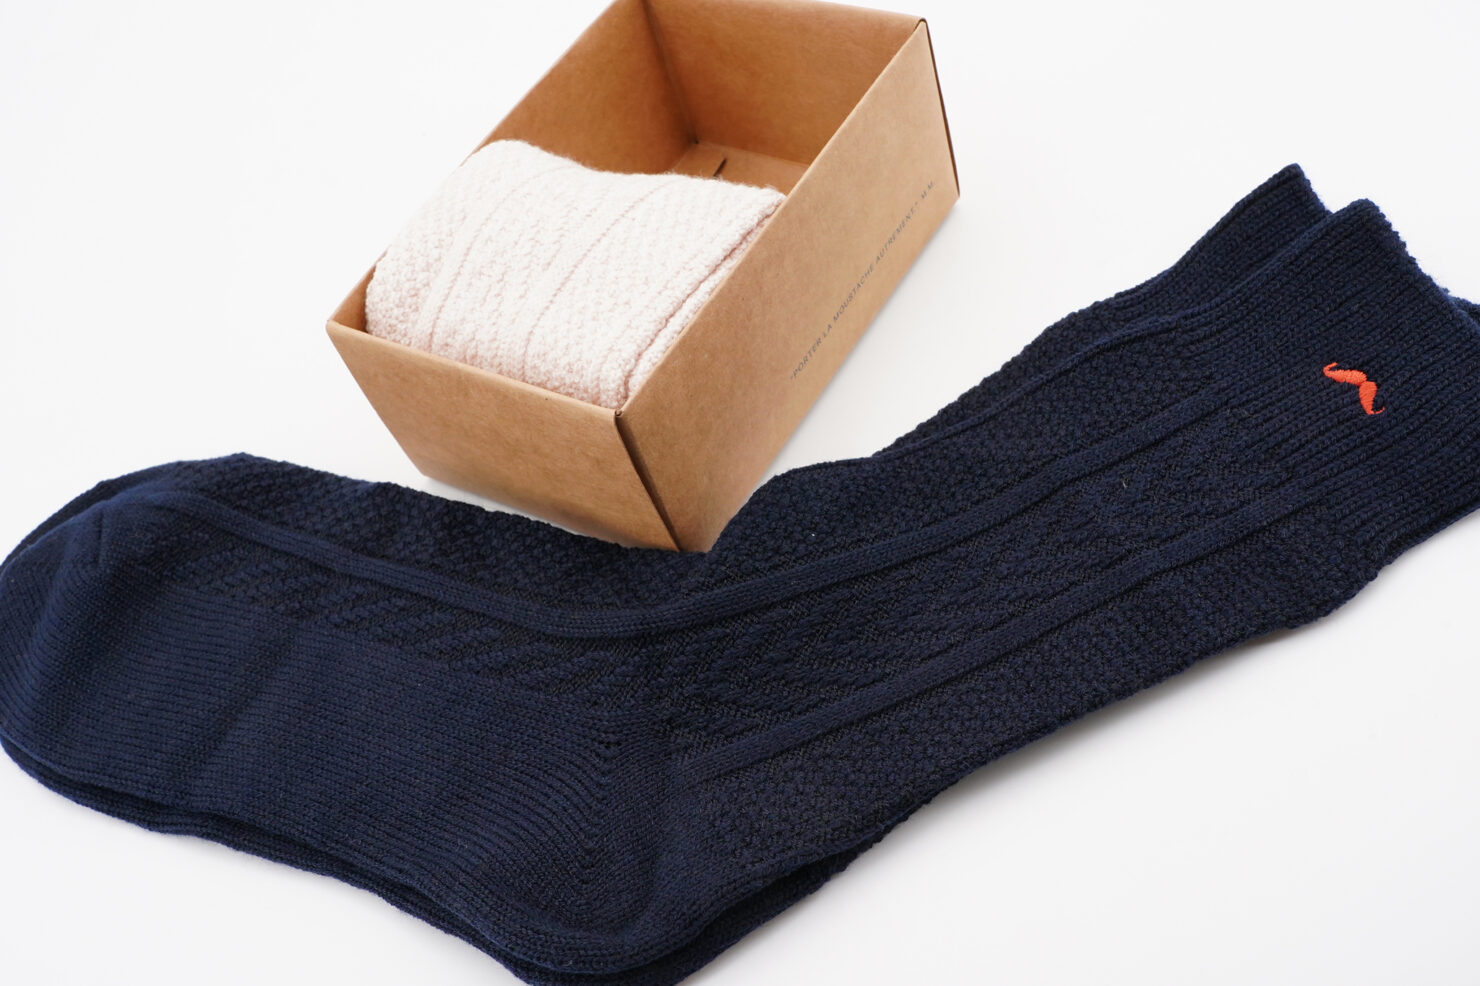 PACK OF 2 SOCKS -MOUNTAIN ECRU, NAVY - M. MOUSTACHE